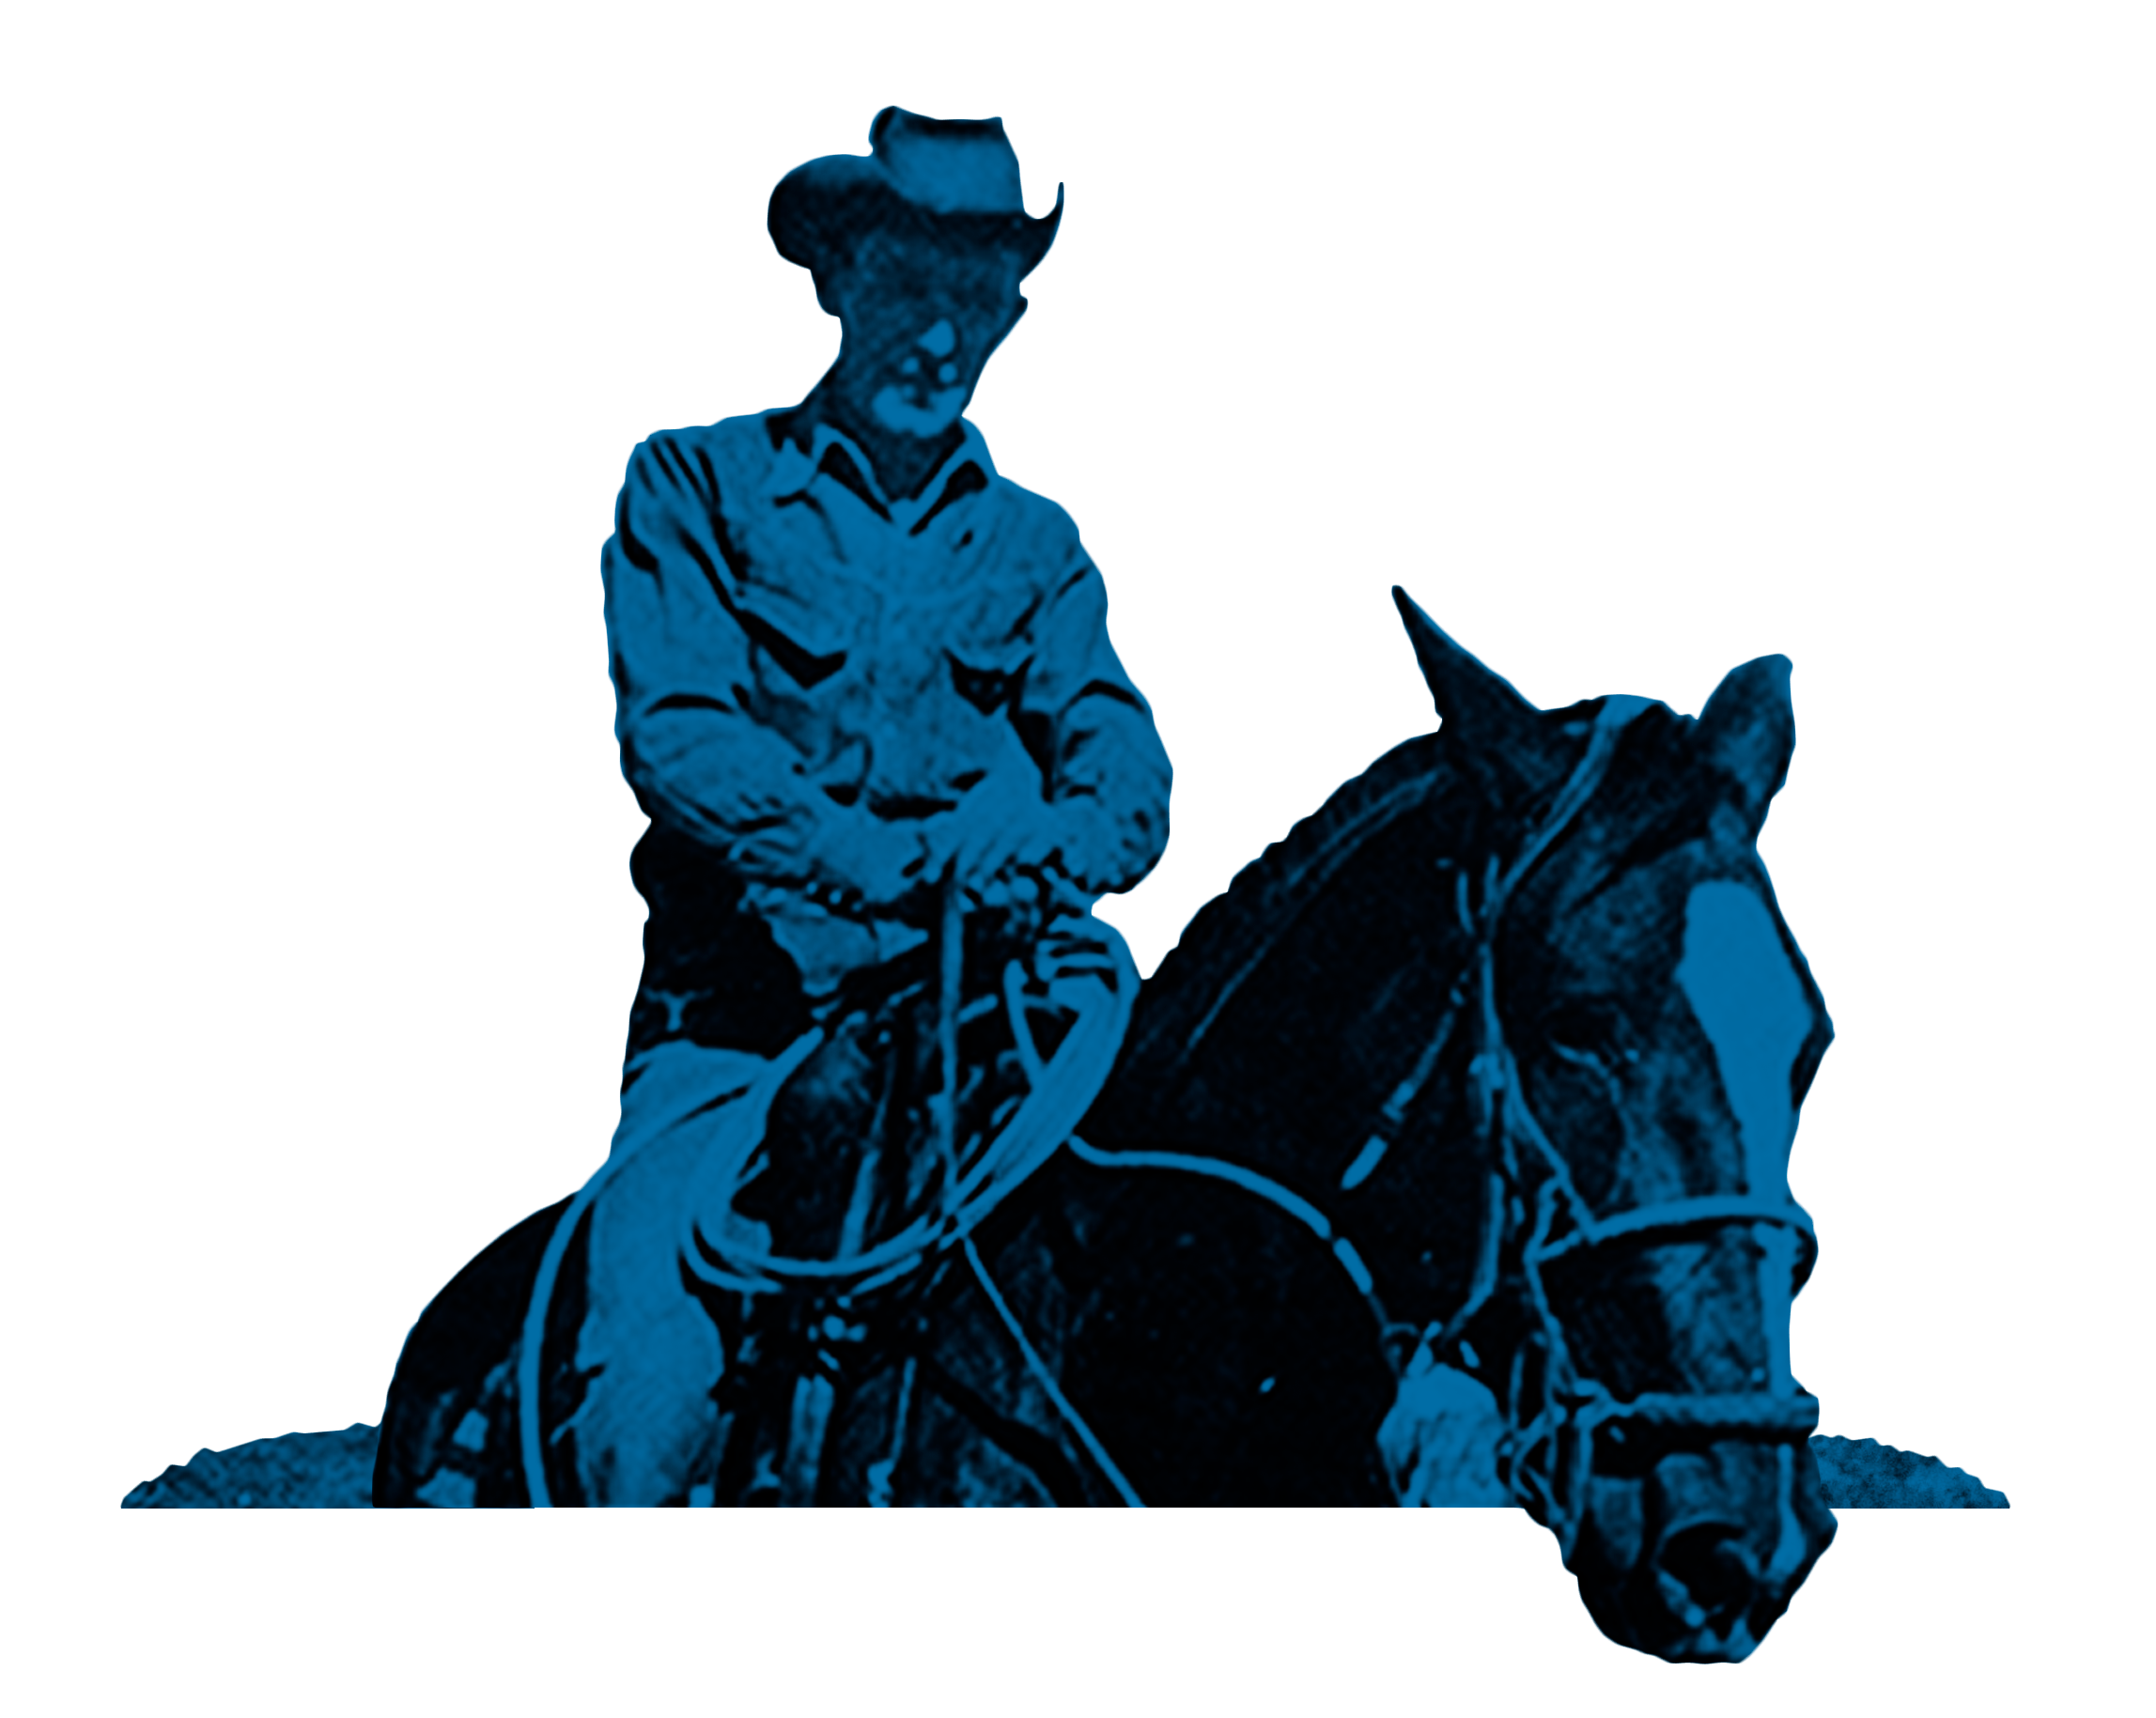 Ray Allen on a horse in black and white with blue overlay